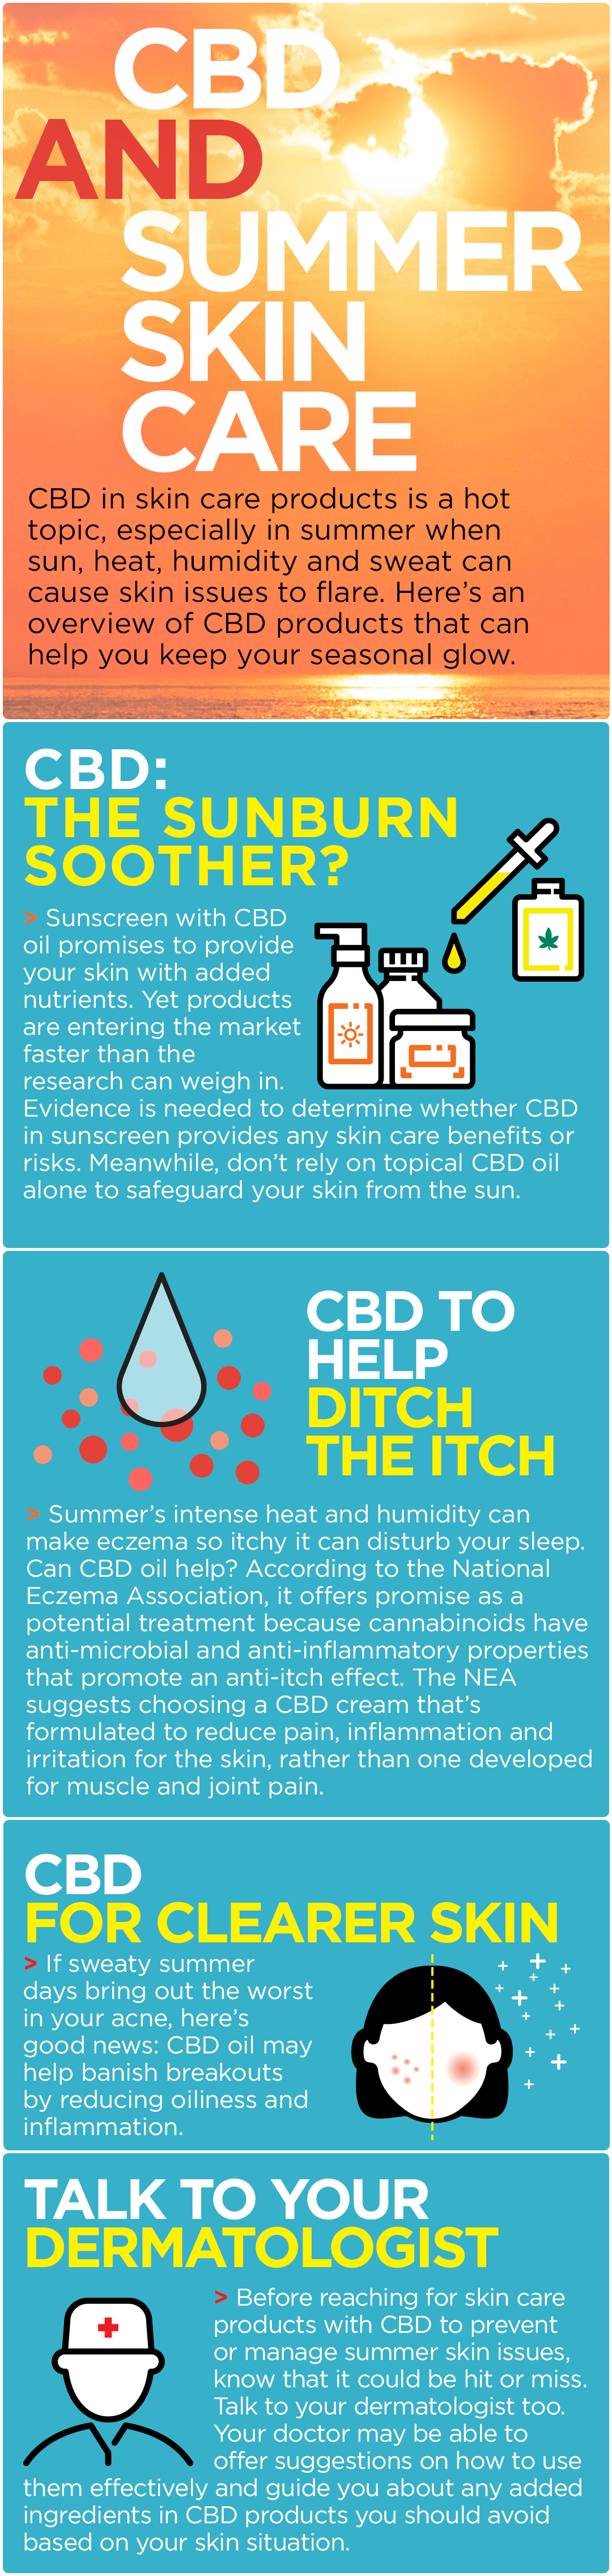 Your Guide to CBD and Summer Skin Care | Marijuana Doctors